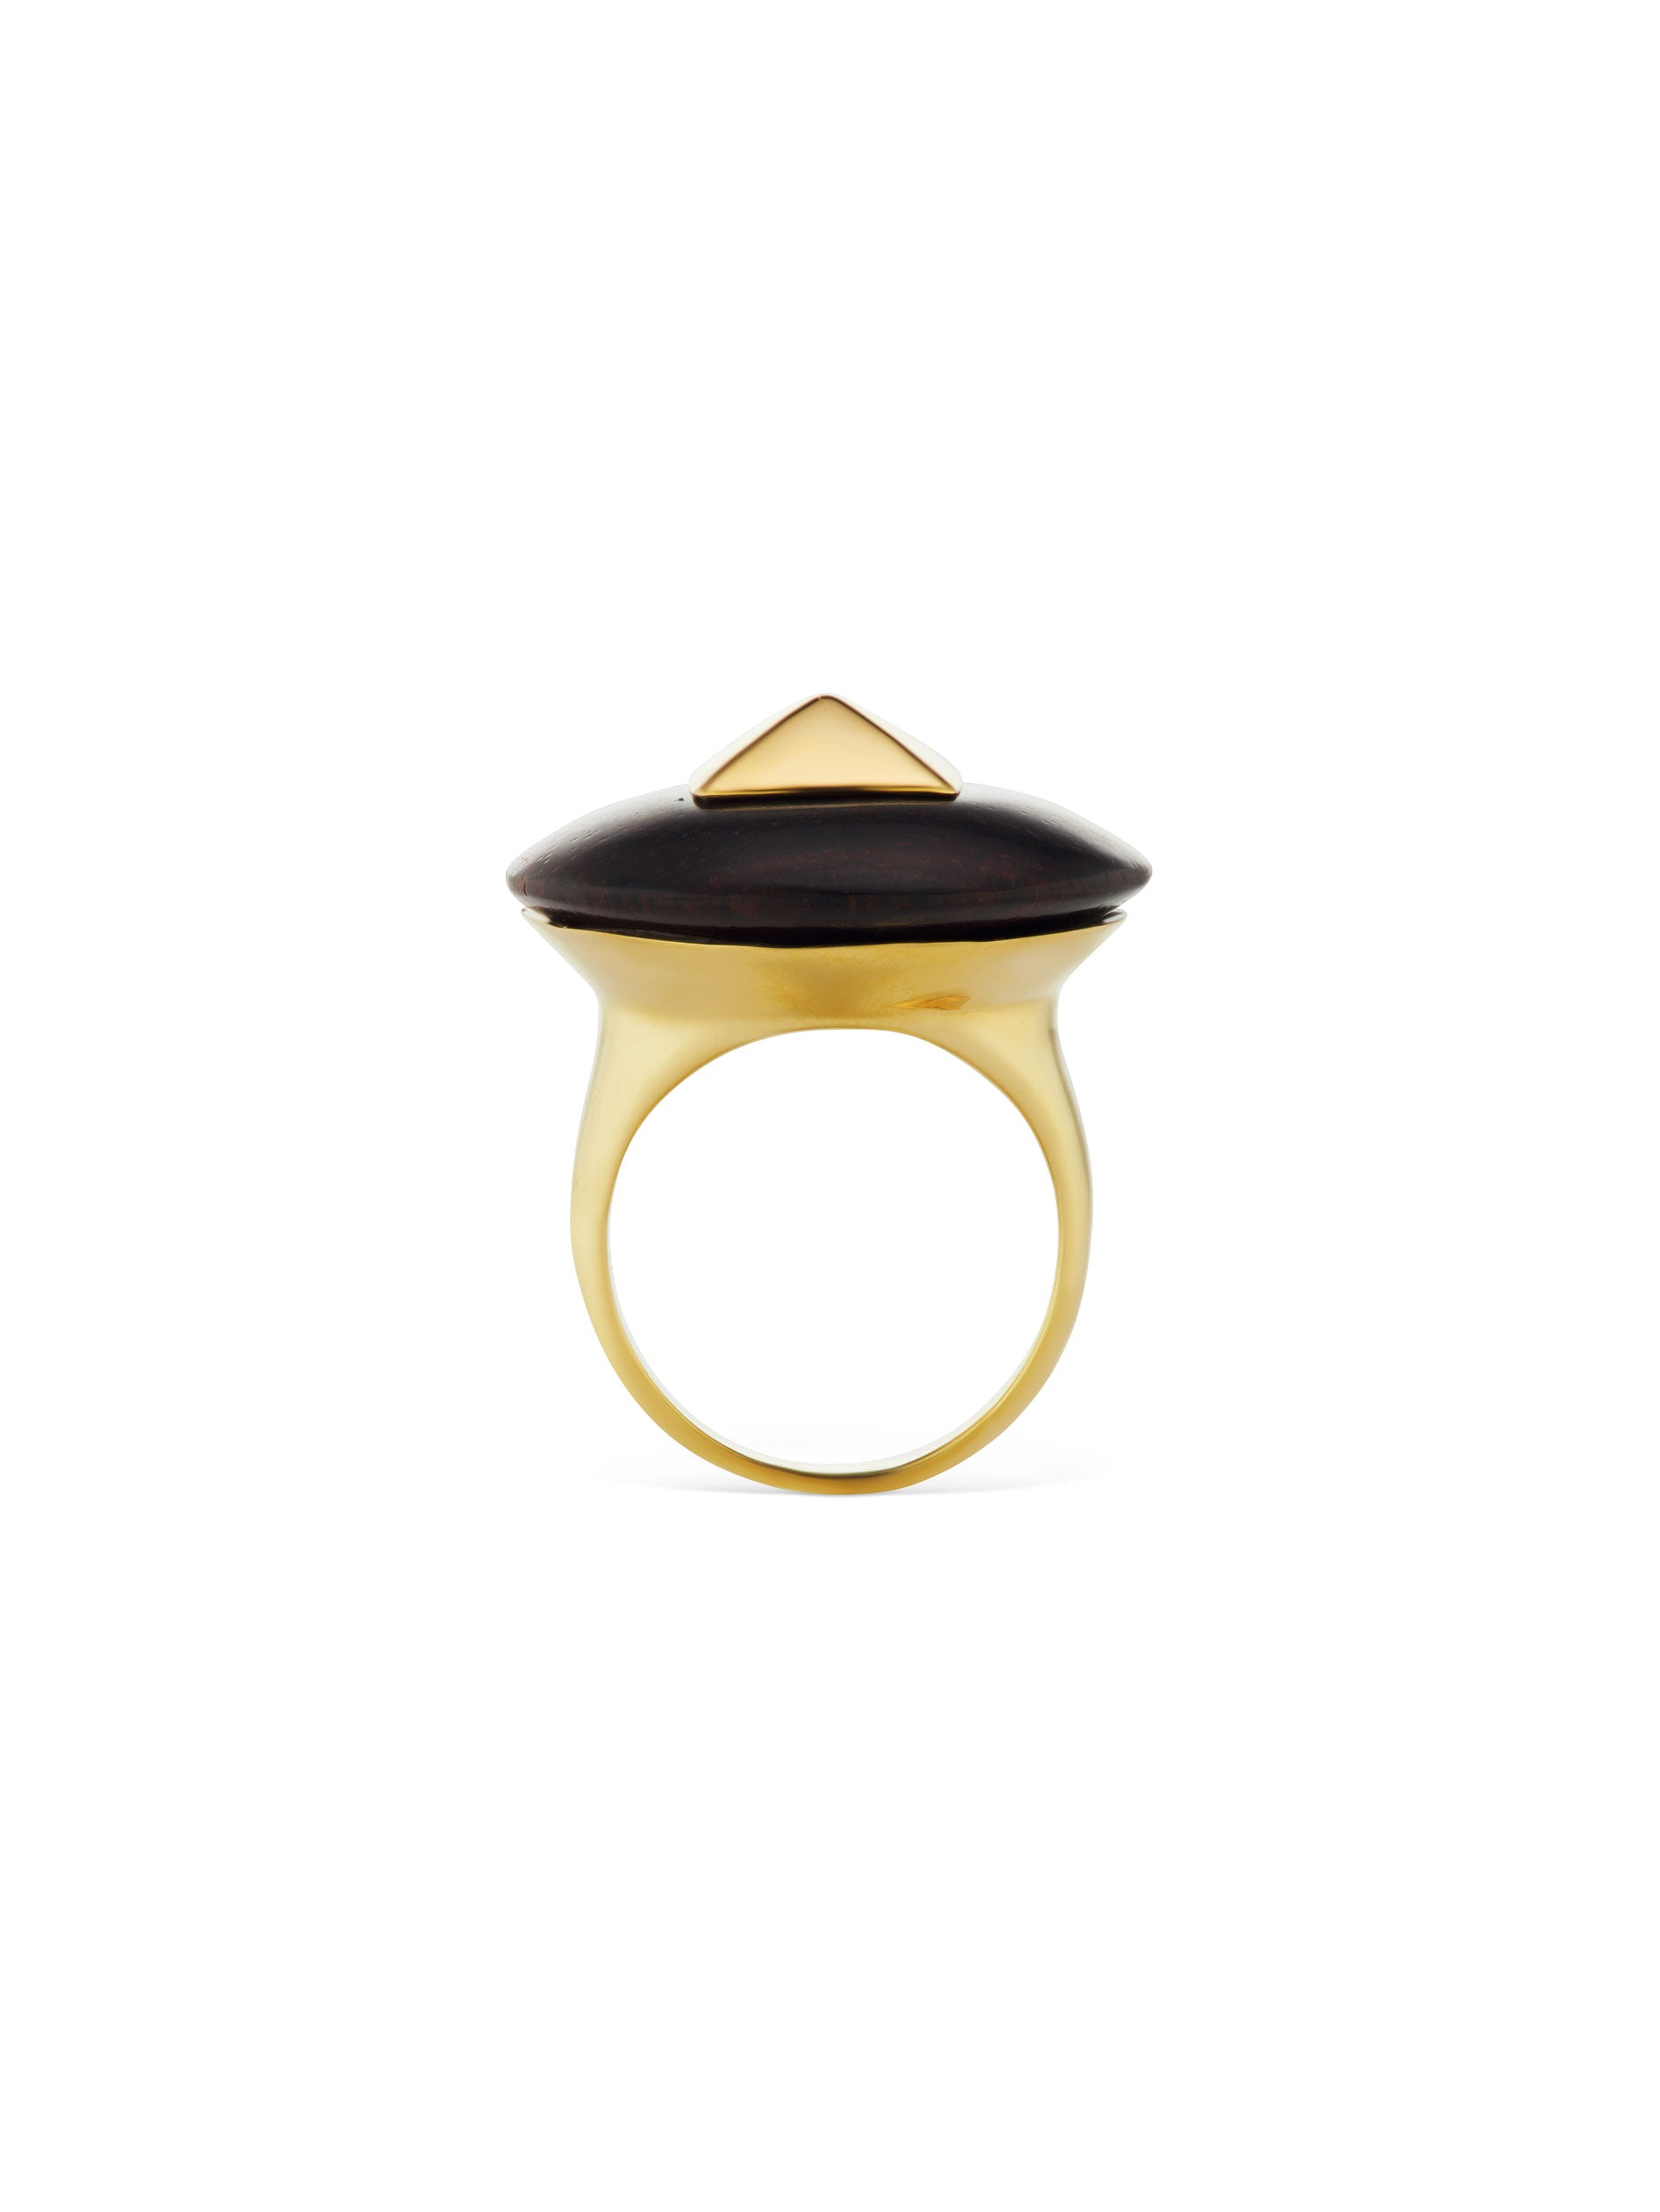 Voyager Disk Ring with Gold Center Ring